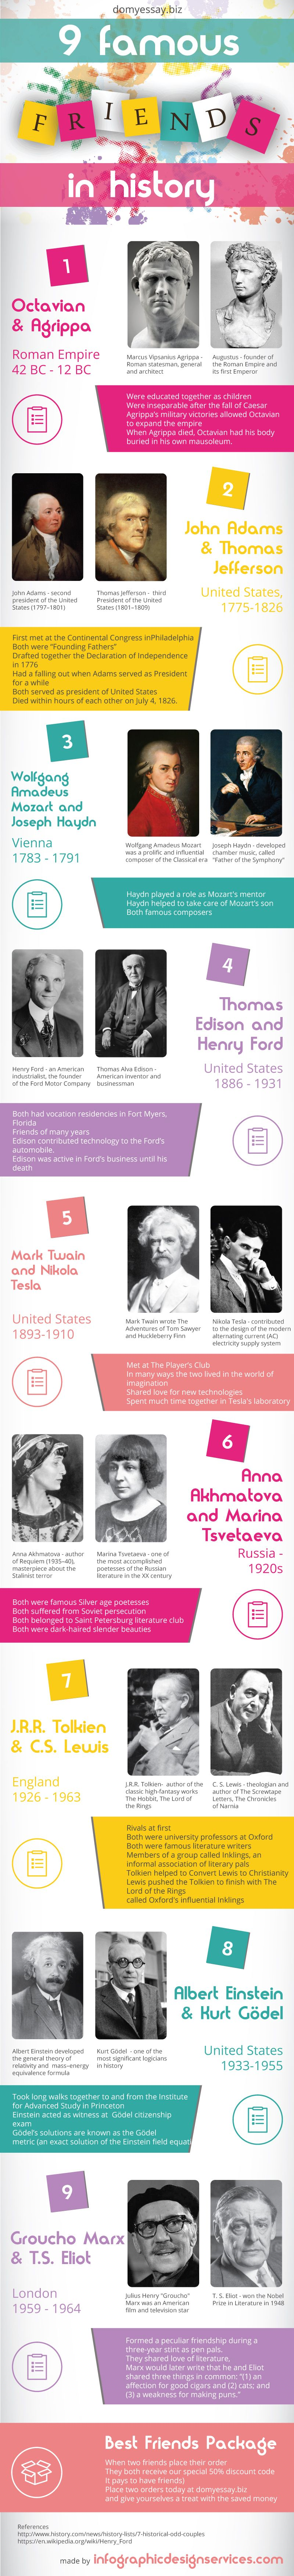 Most Famous Real-life Friendships in History